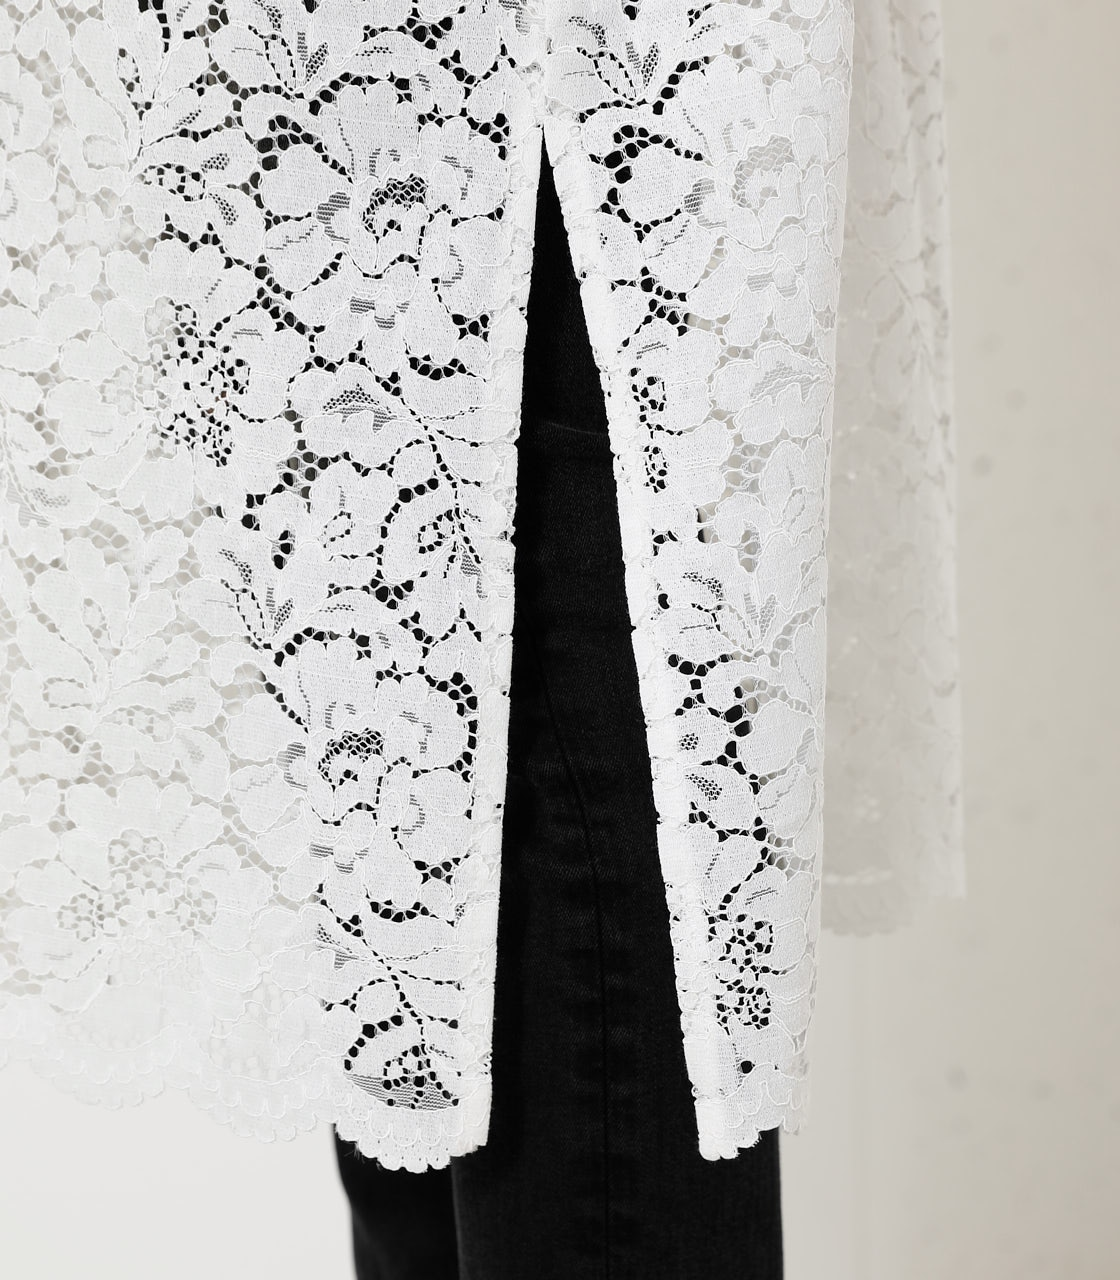 SCALLOP LACE LONG GOWN/スカロップレースロングガウン 詳細画像 O/WHT 9